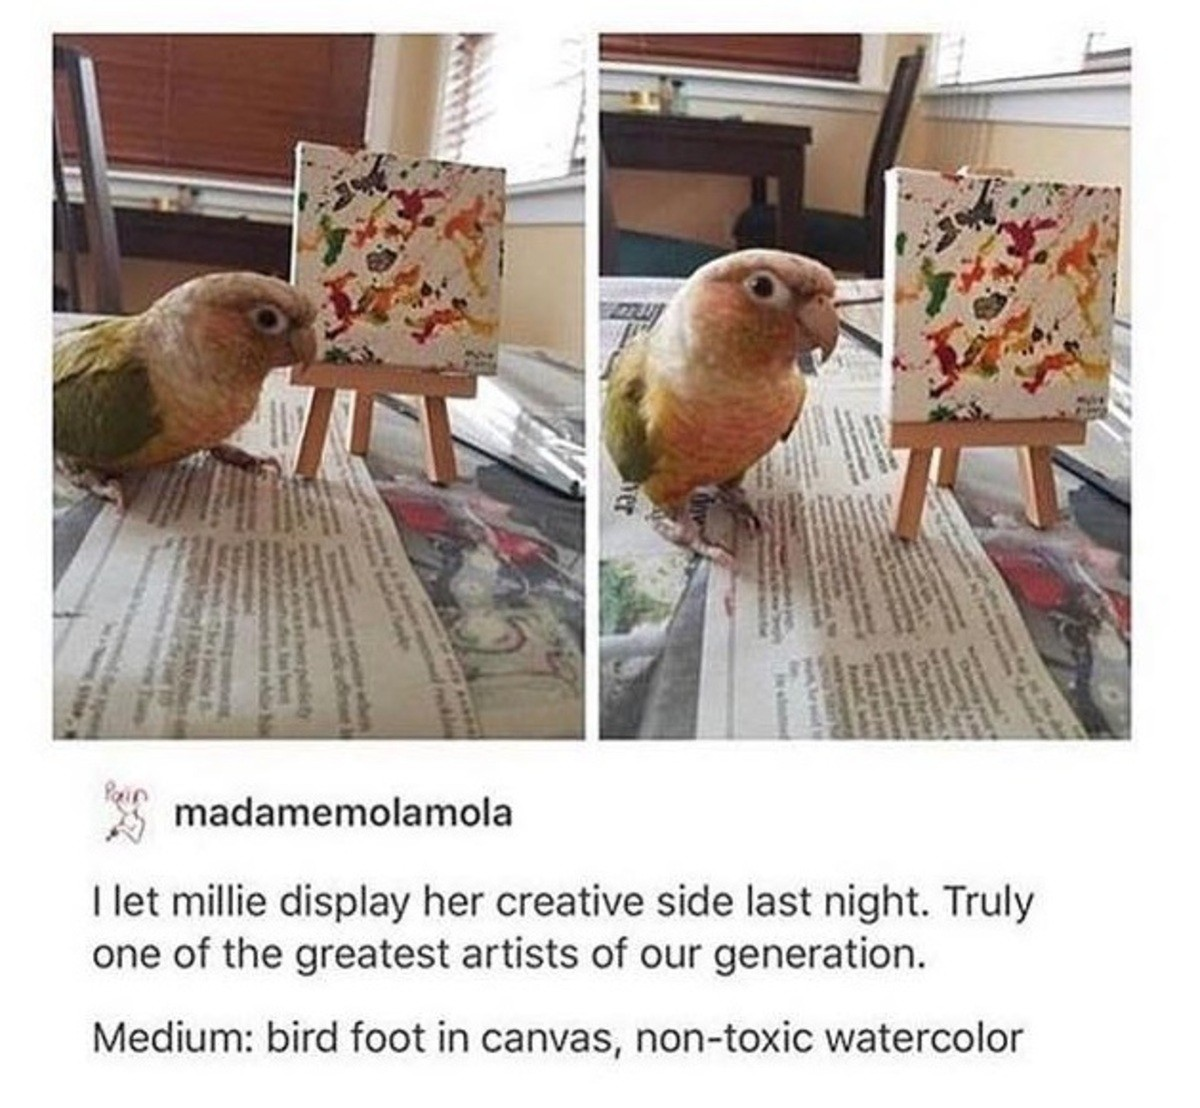 Mcburd the painter. . I let mime display her creative side last night. Truly one of the greatest artists of our generation. Medium: bird foot in canvas, (' wate